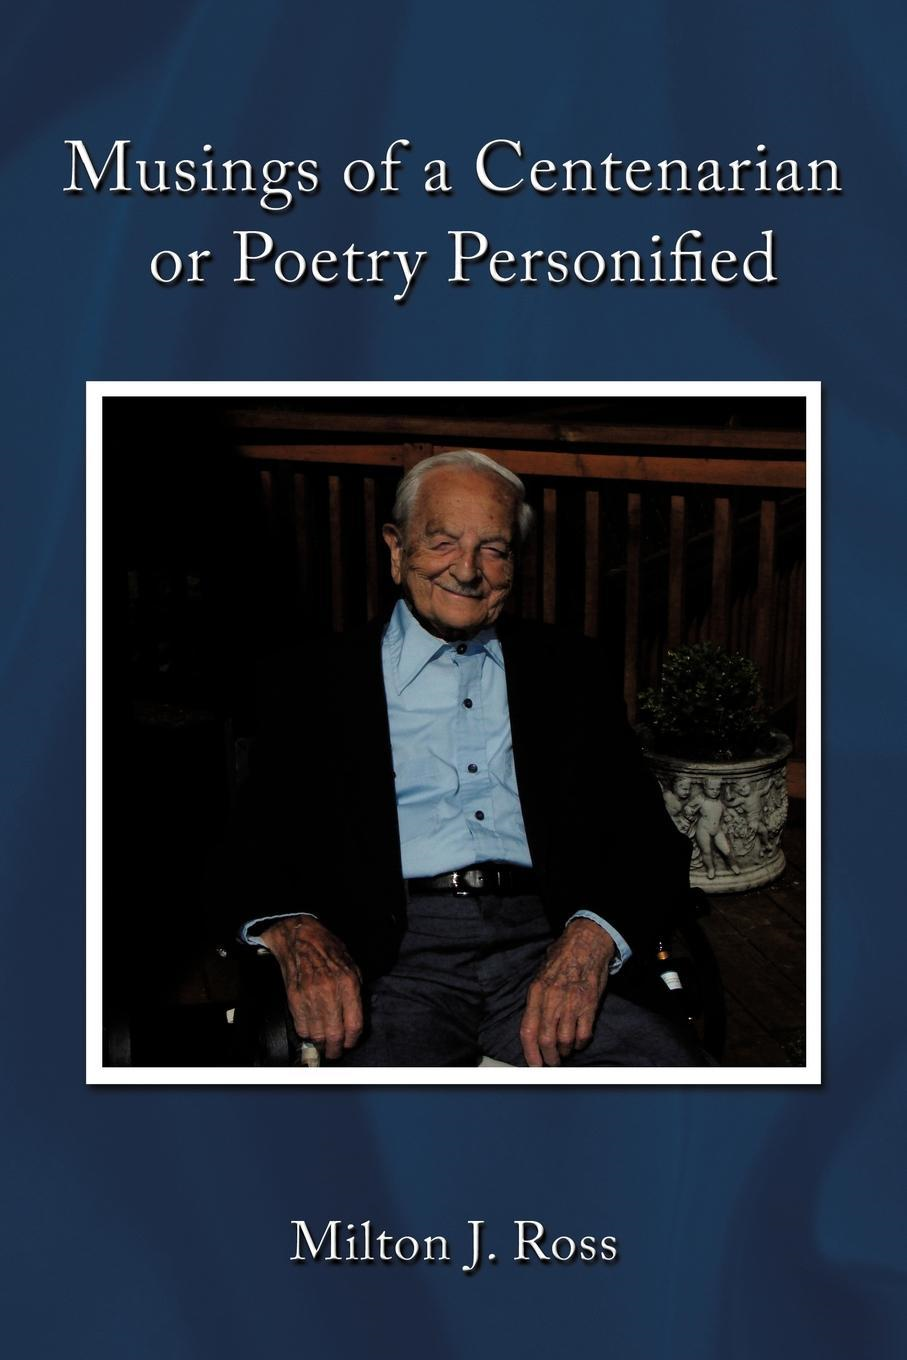 download musings of a centenarian or poetry personified